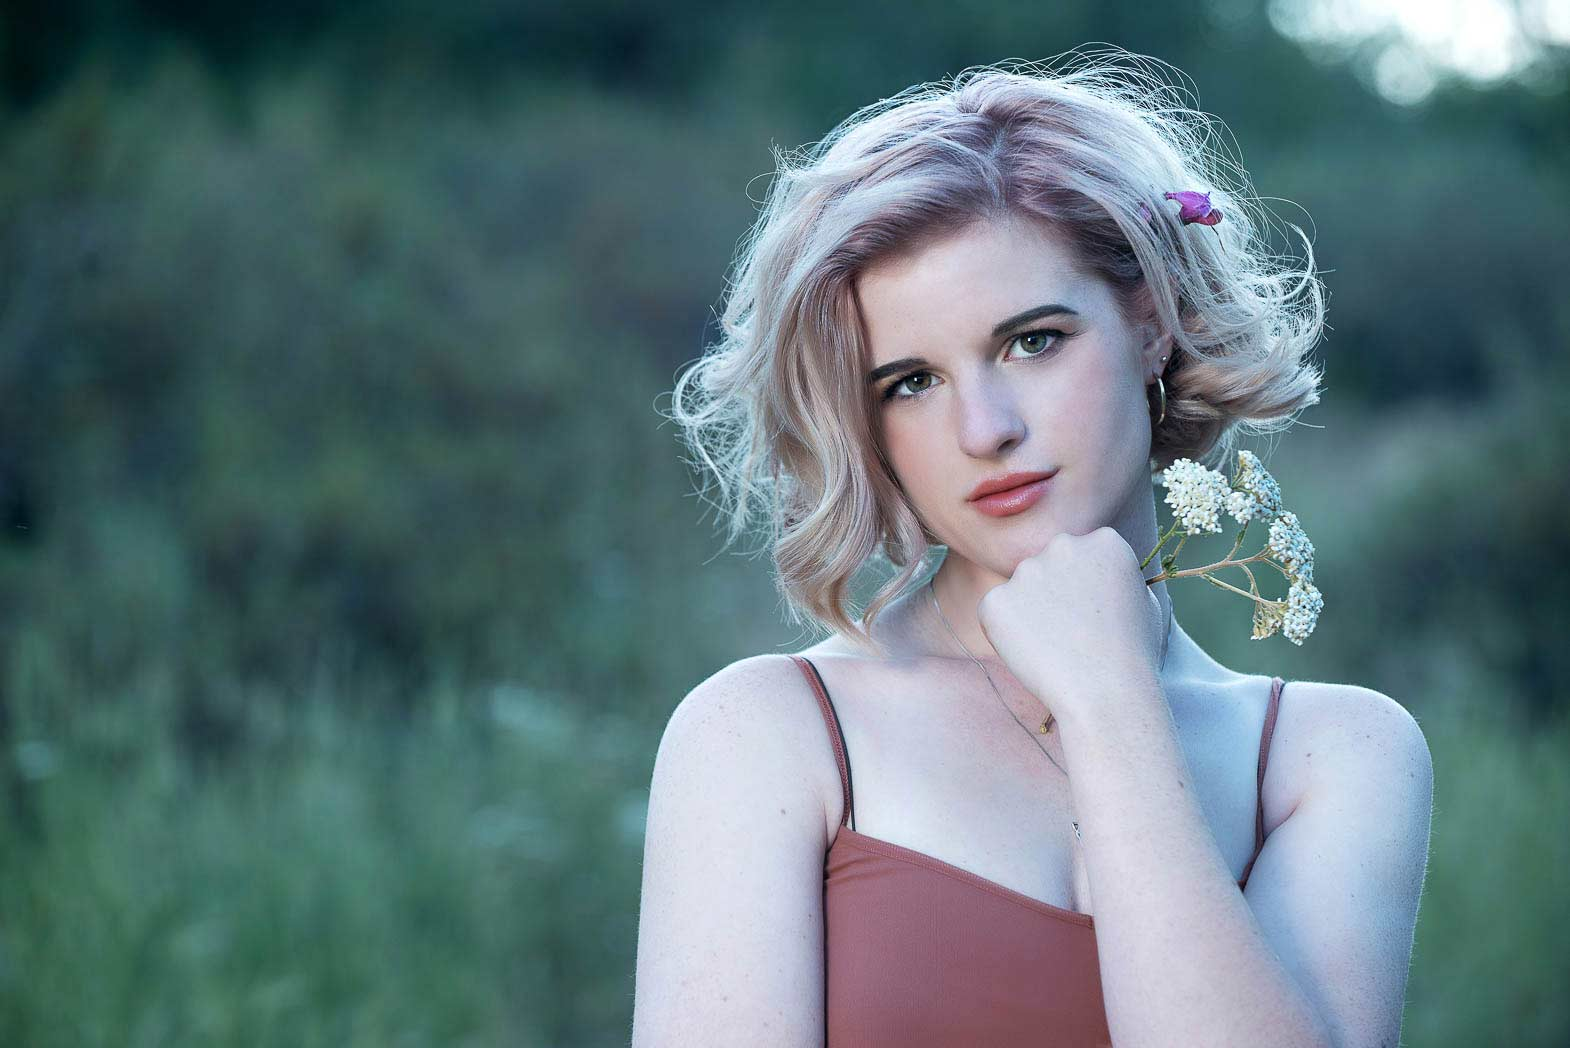 wilderness senior picture of girl with wildflowers standing in front of green background